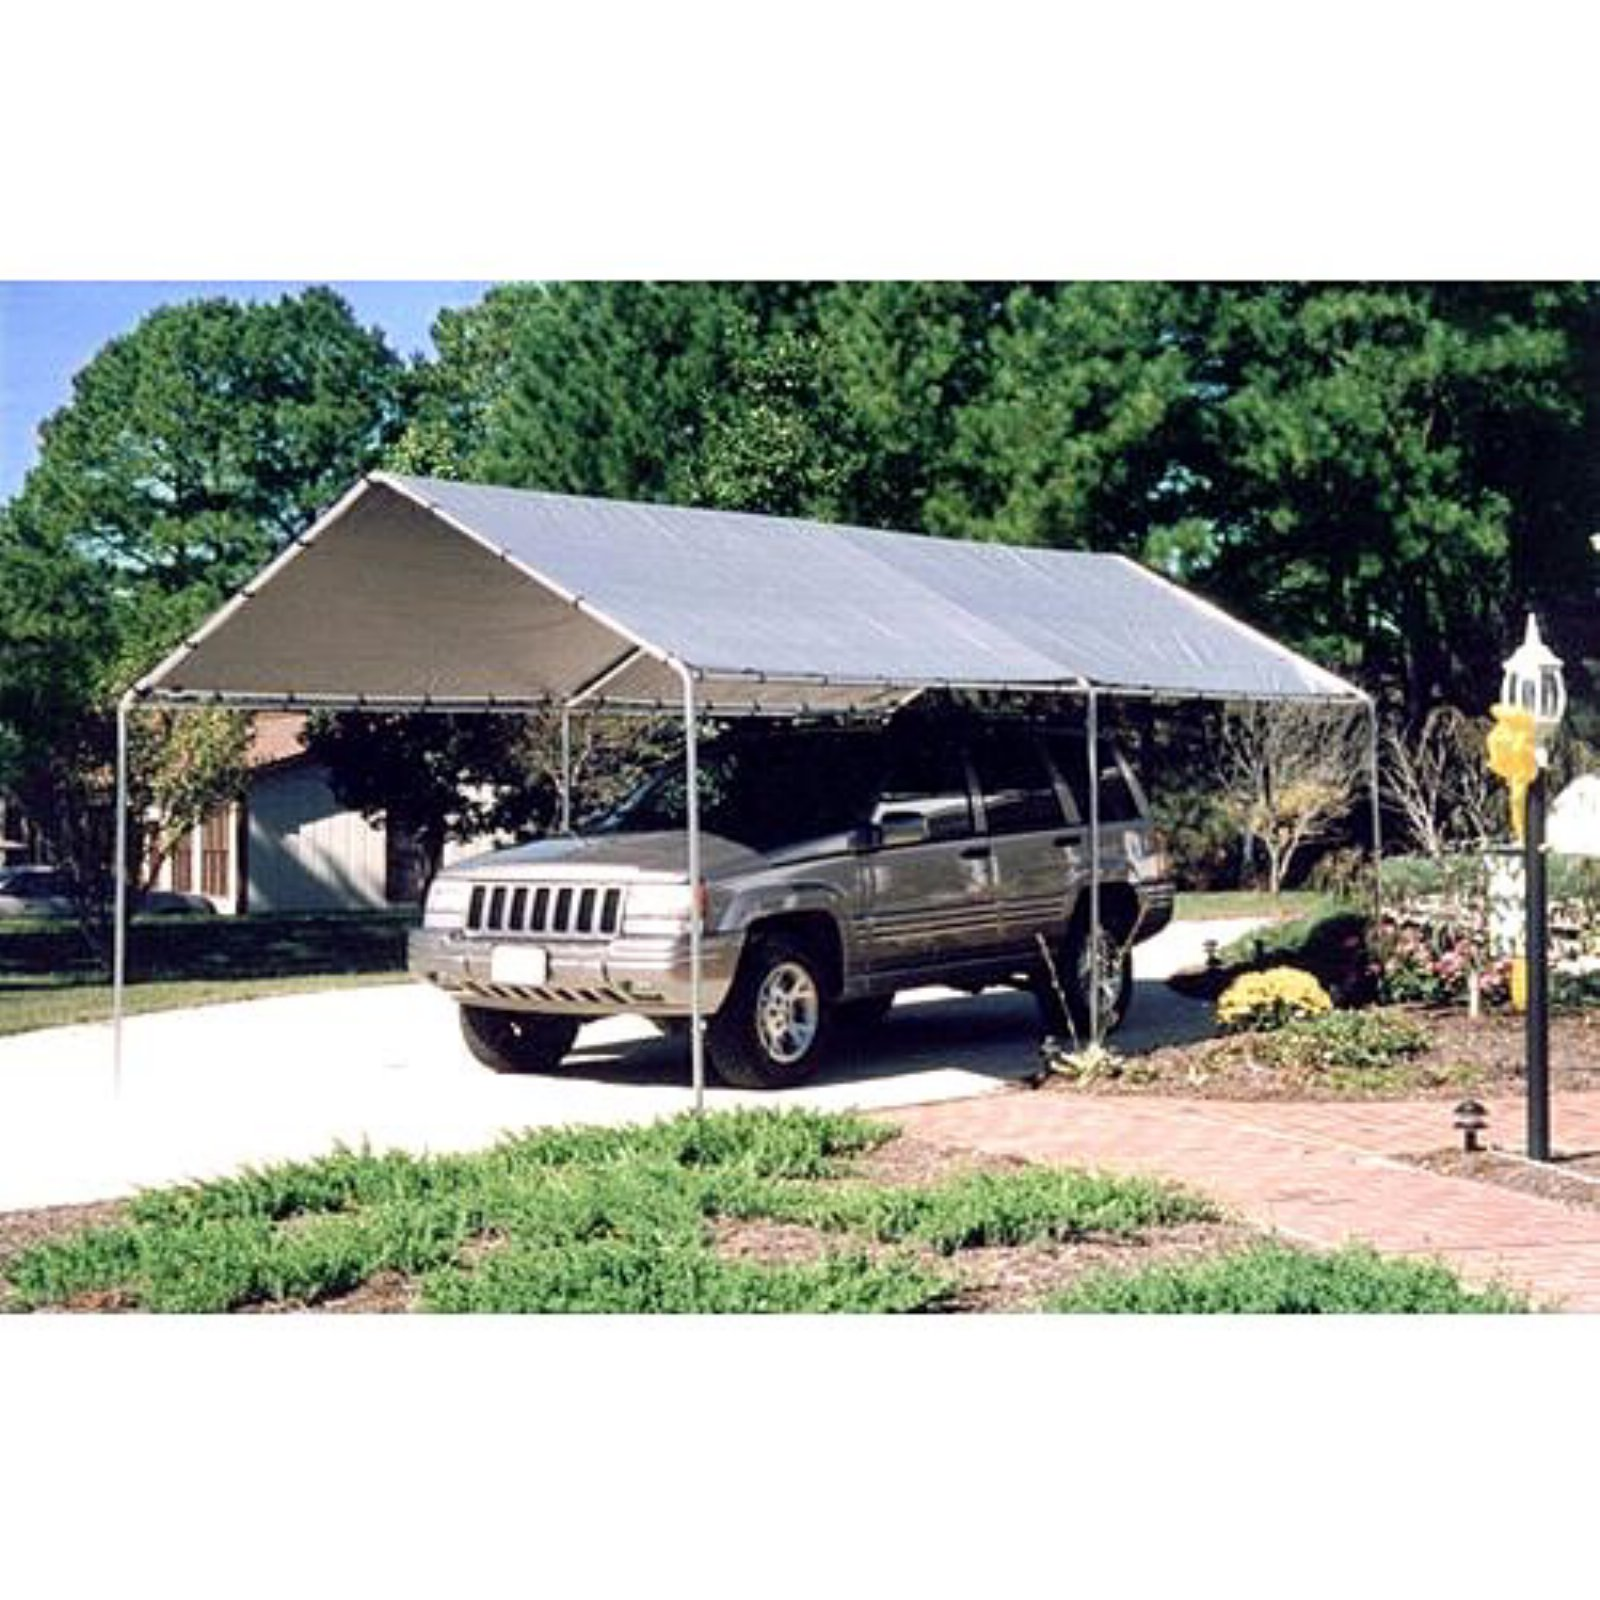 King Canopy 10 x 20 ft. Canopy Carport 6 Legs by PIC America, LTD